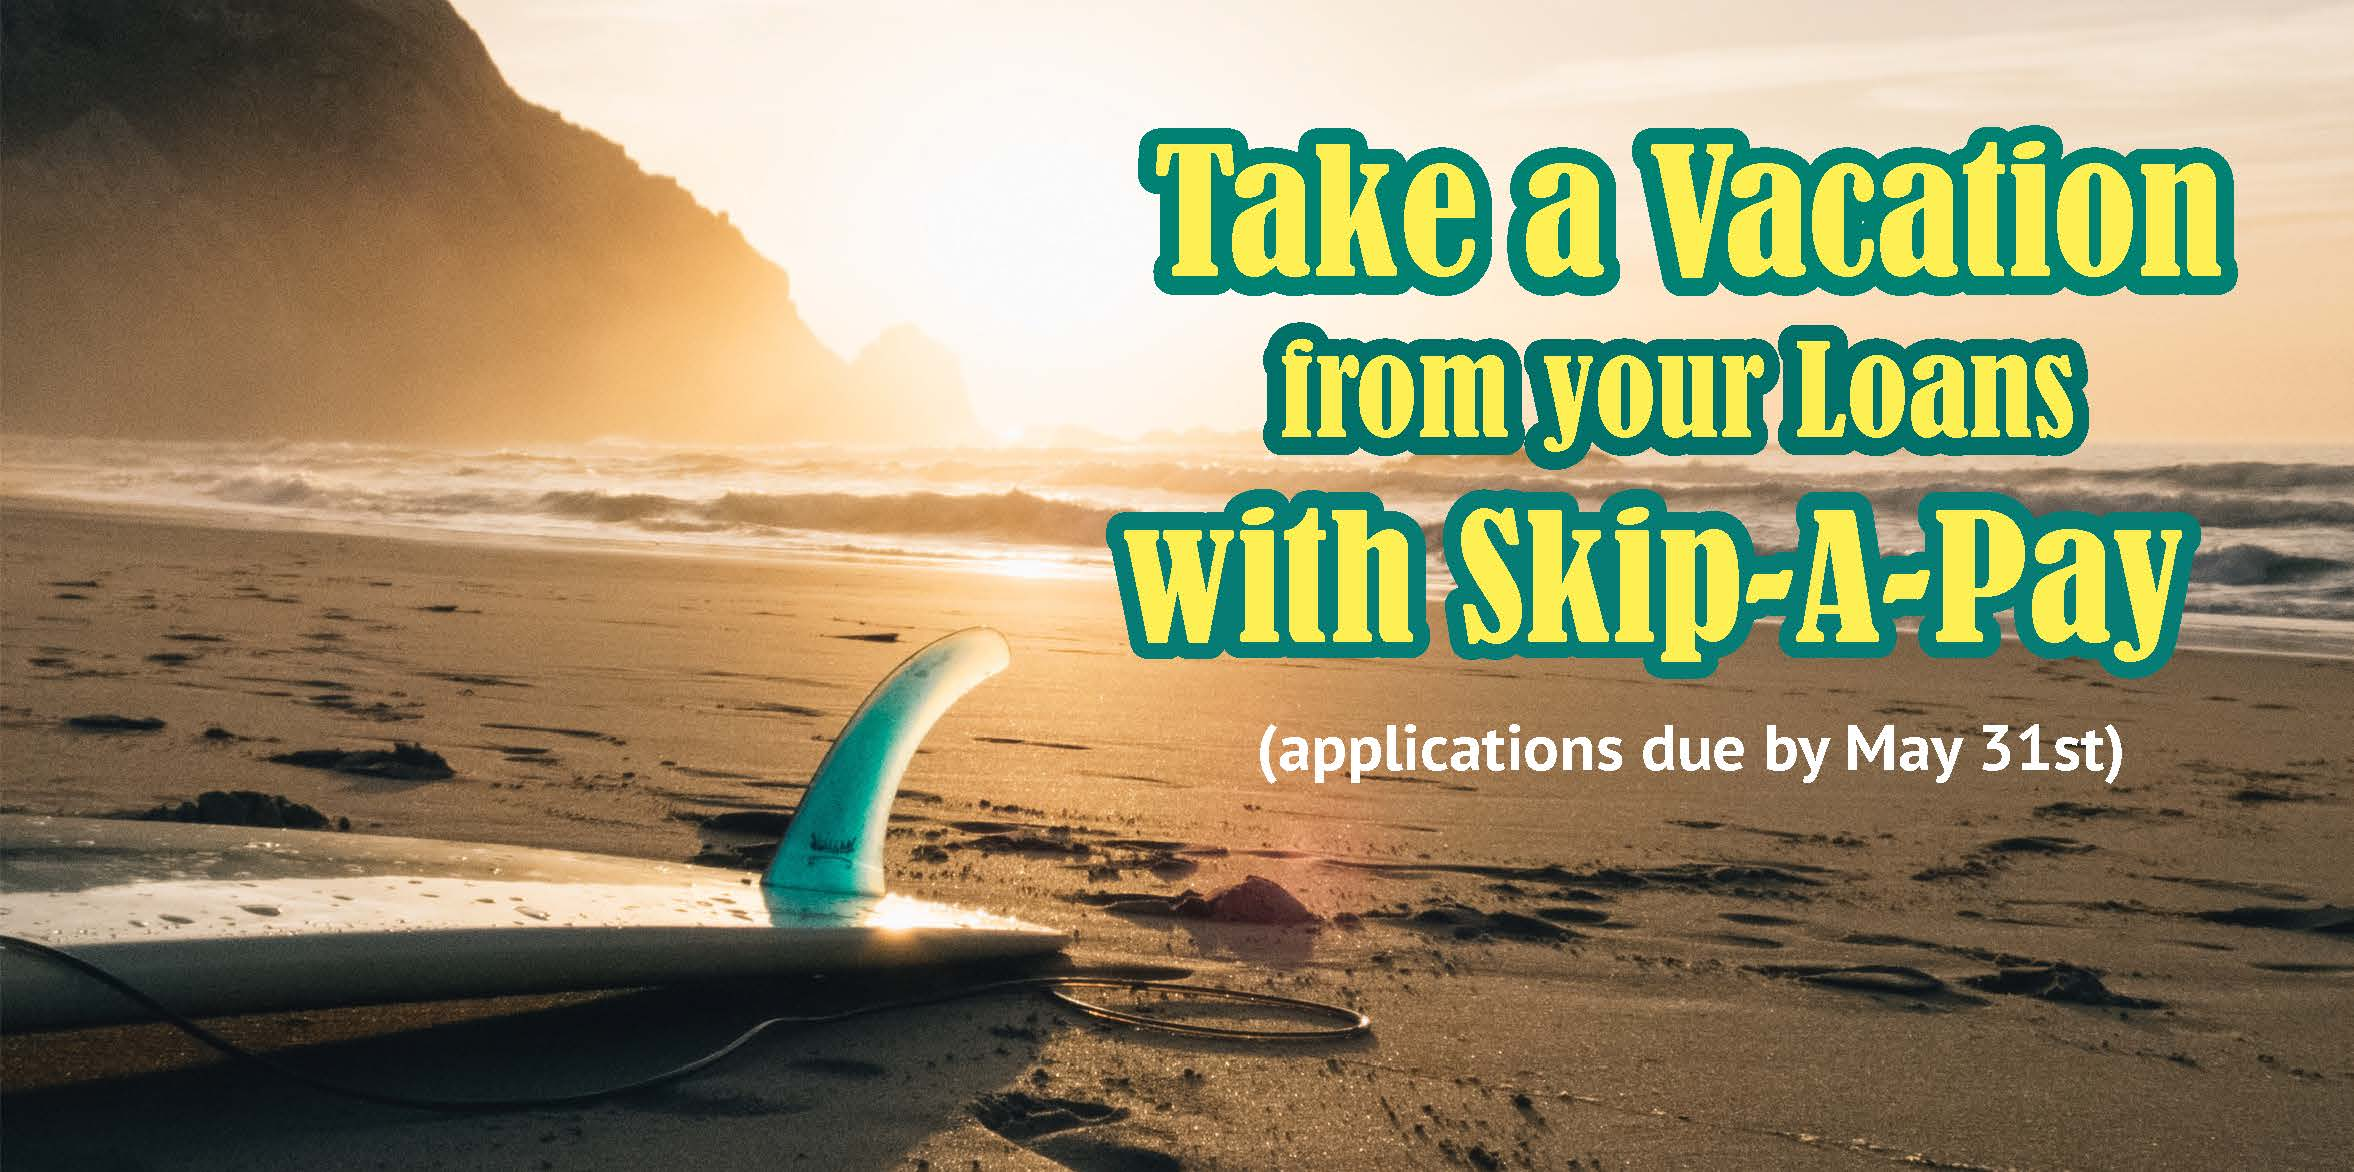 Skip-a-pay Summer 2017 Post Image